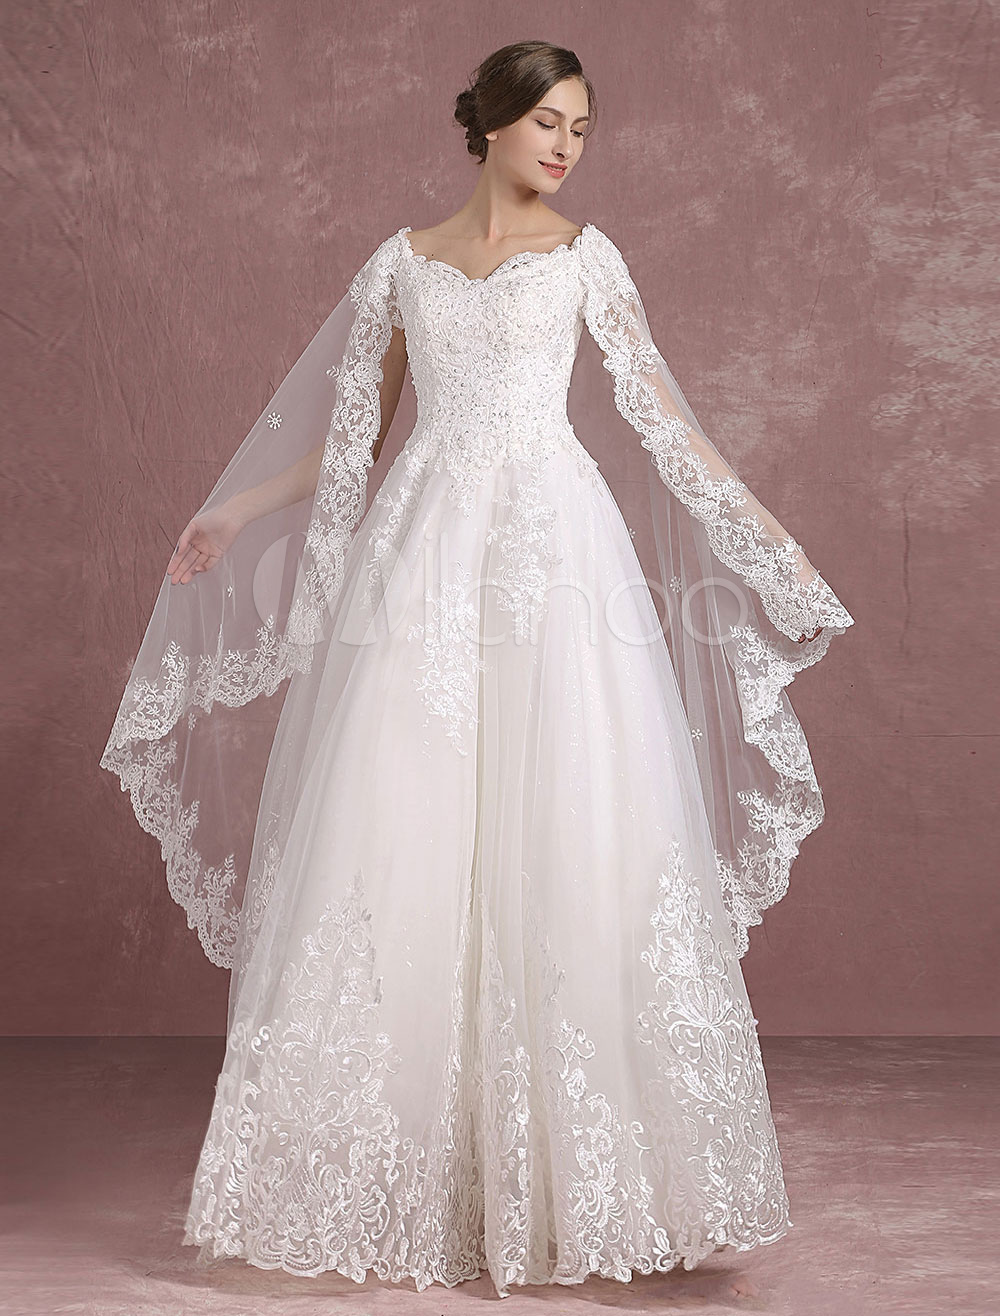 Summer Wedding Dresses 2018 Lace Bridal Dress V Neck Applique Beading Back Cutout A Line Maxi Bridal Gown With Watteau Train